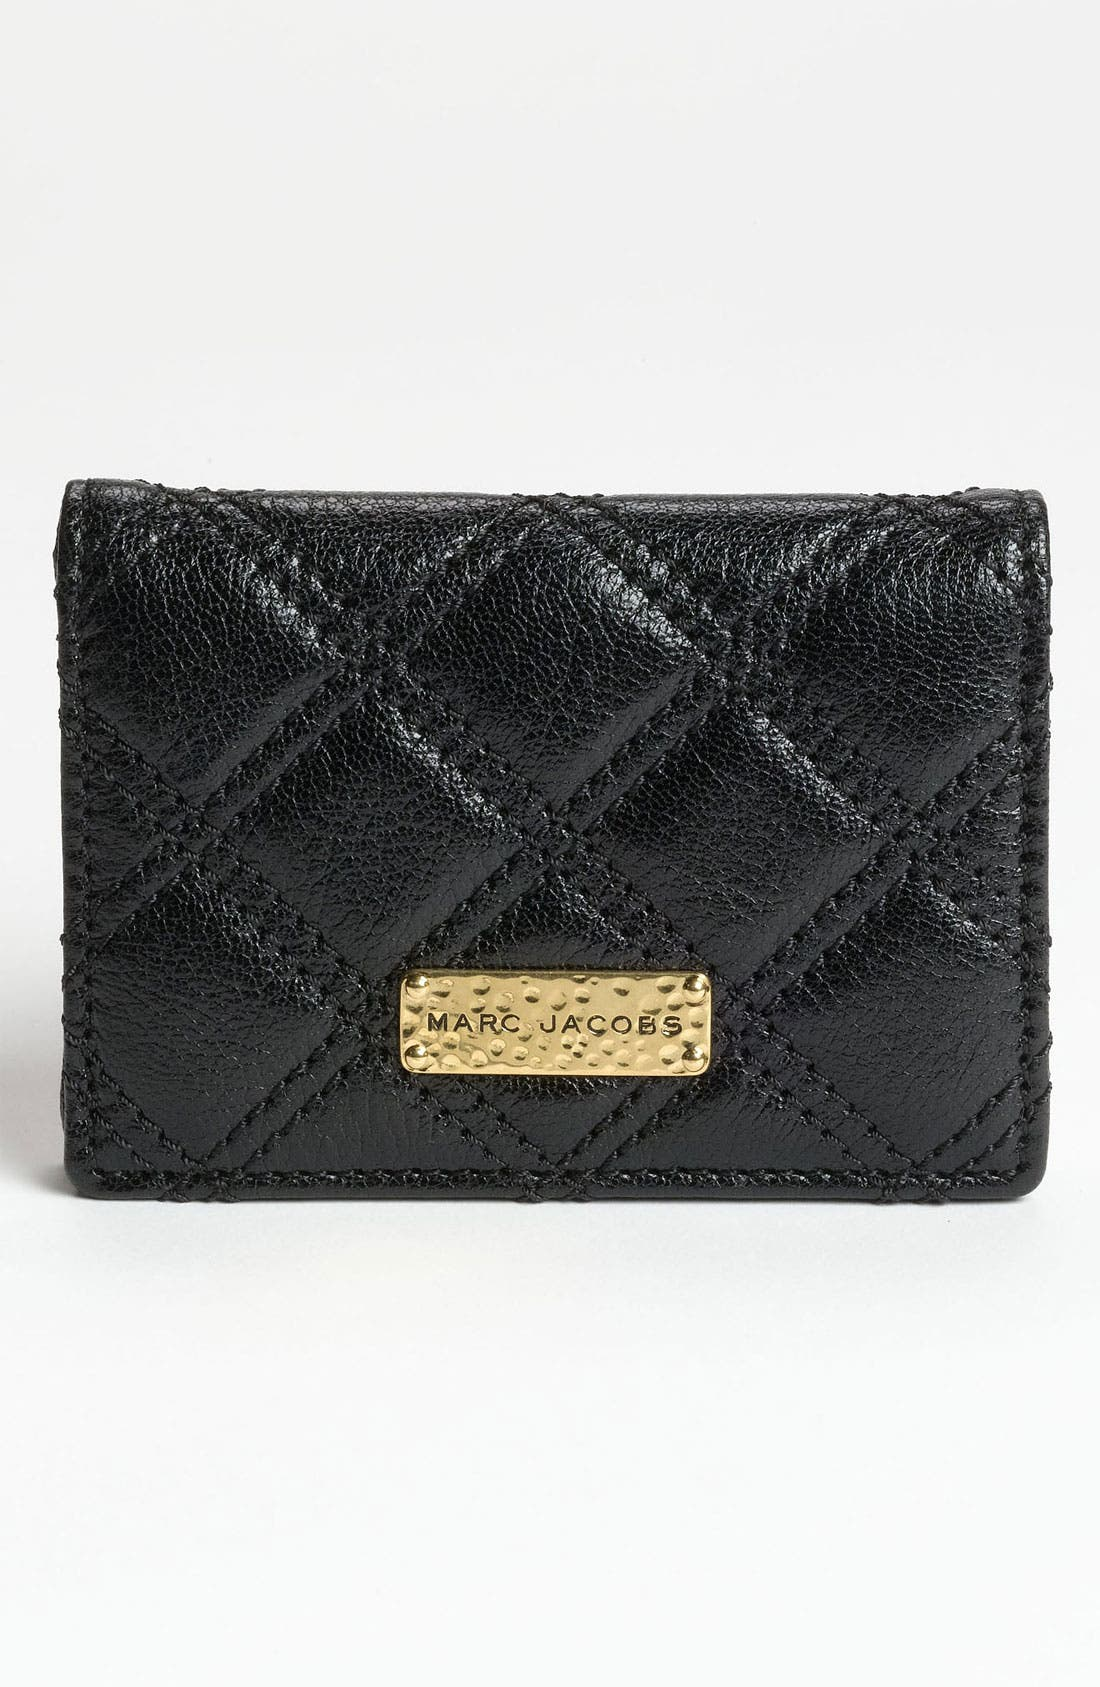 Main Image - MARC JACOBS 'Baroque' Card Holder